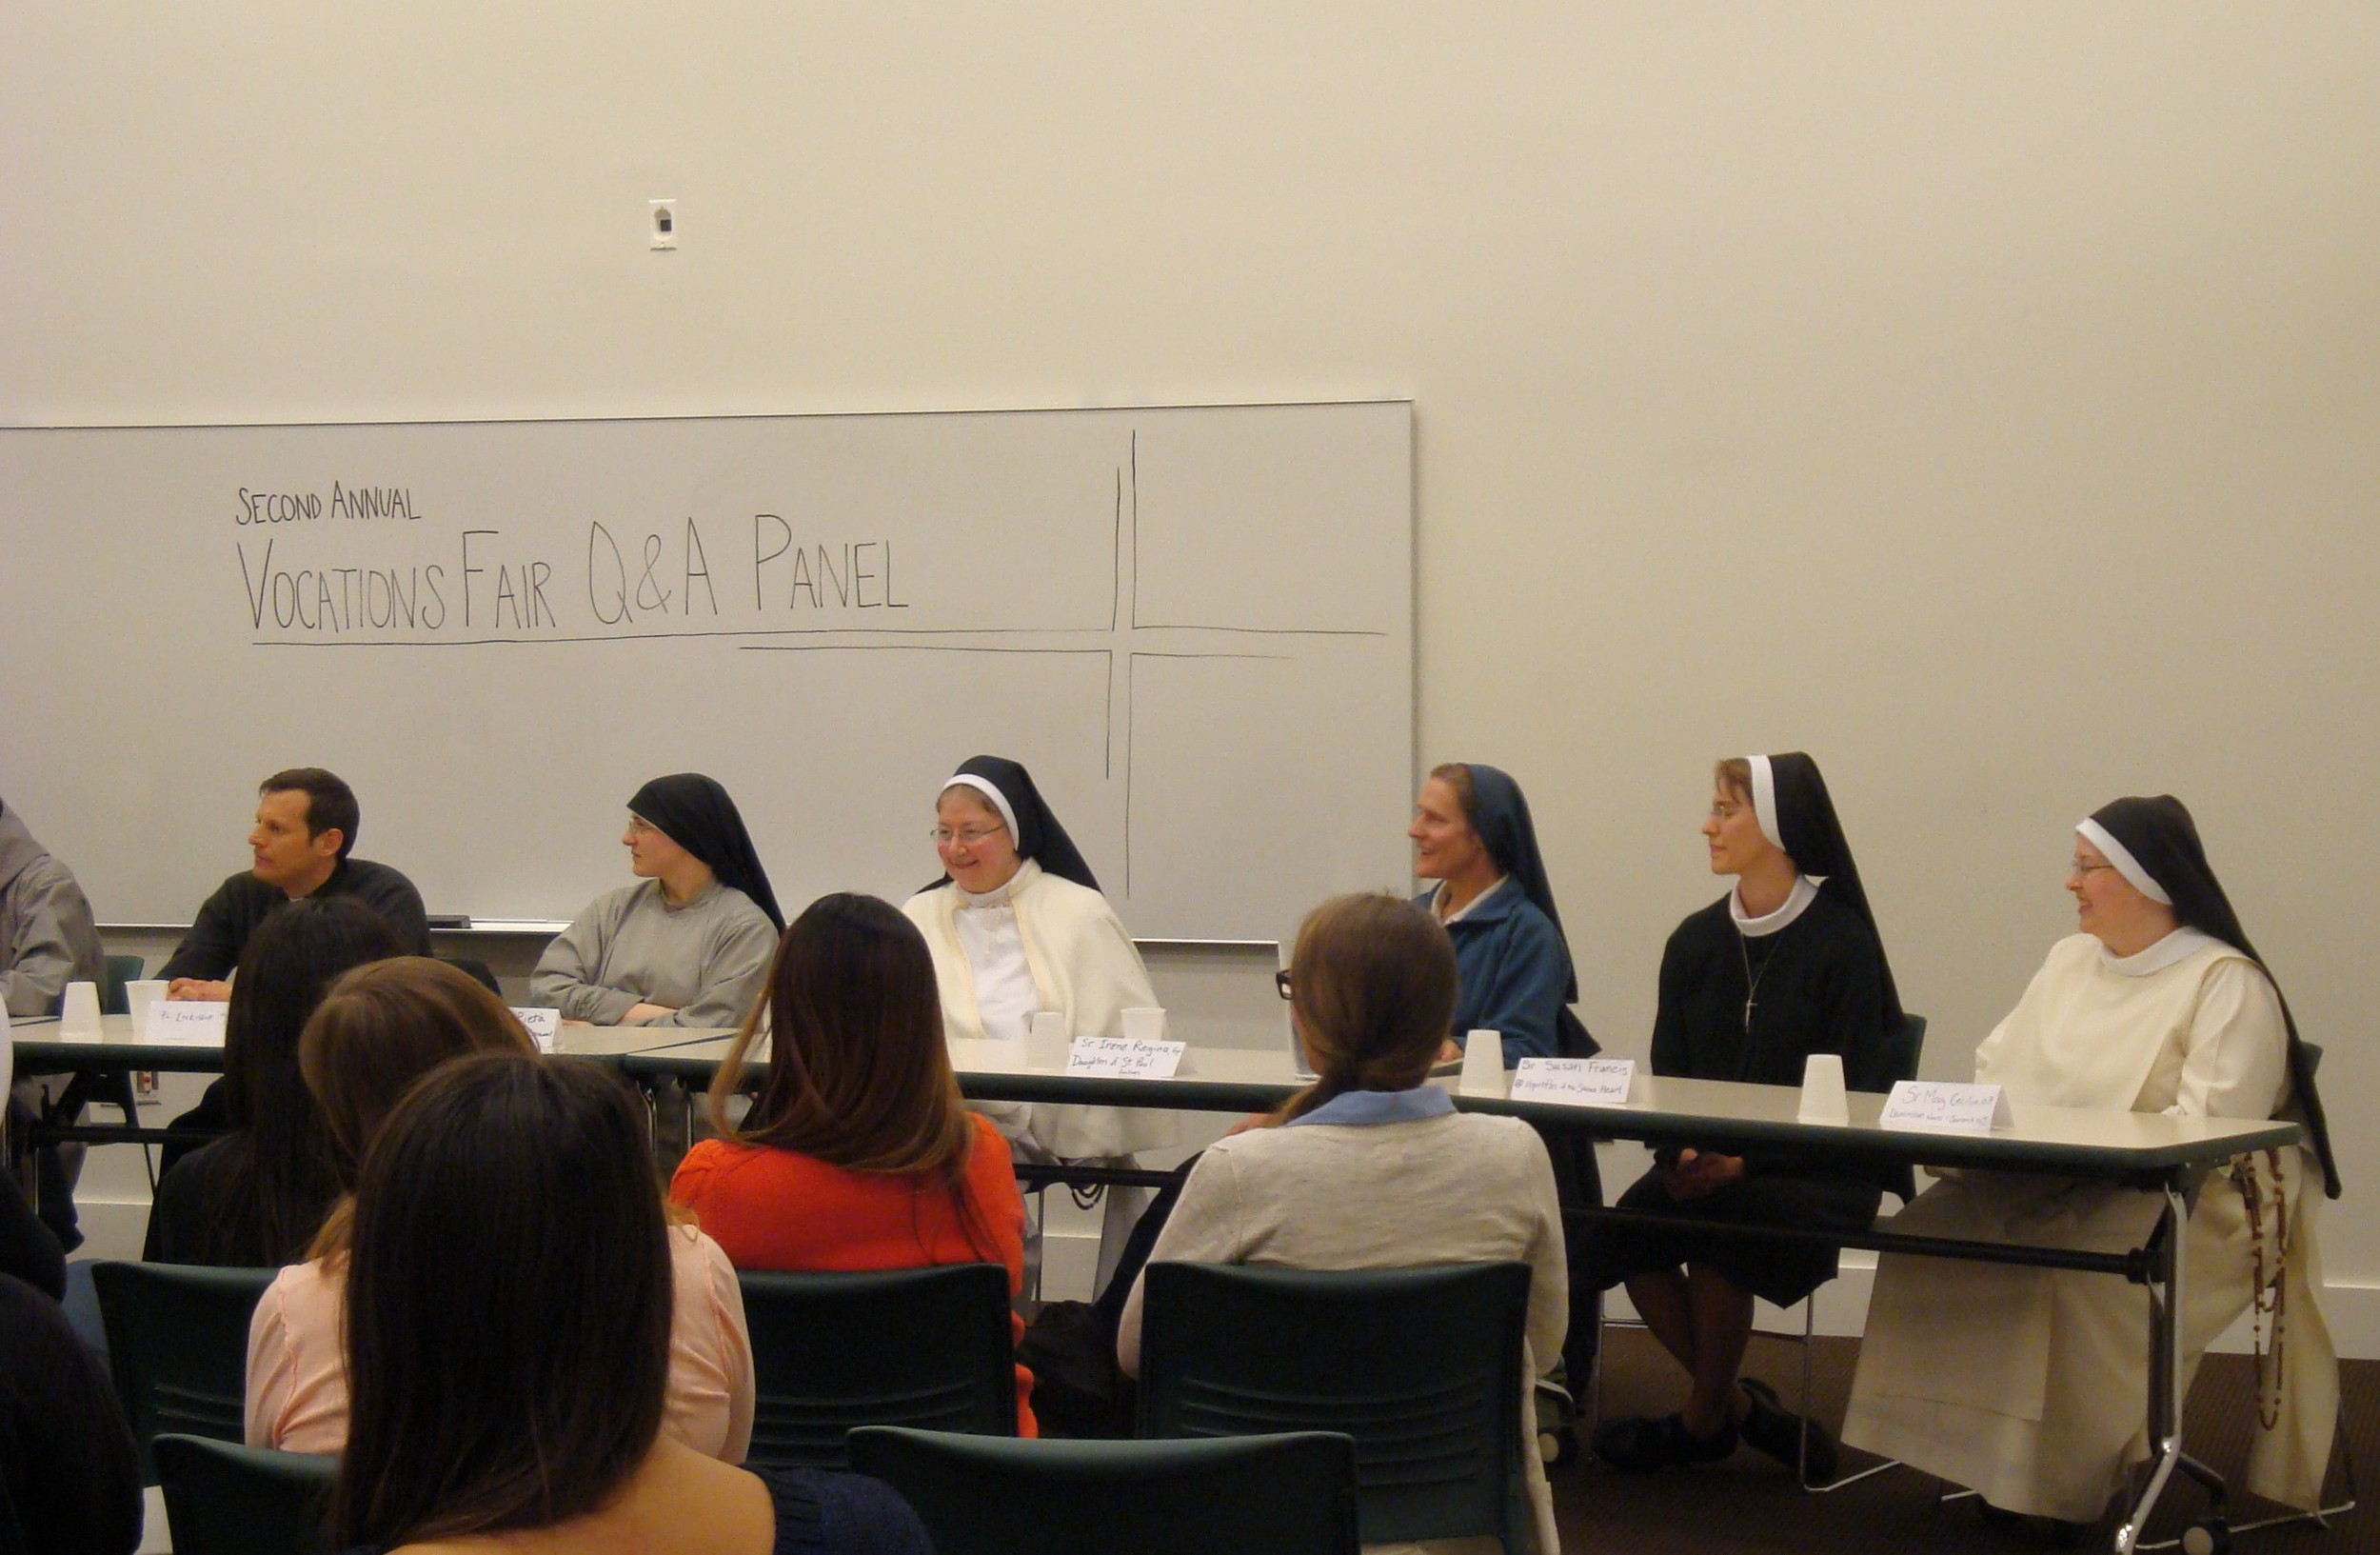 The panel of religious for the question and answer session.